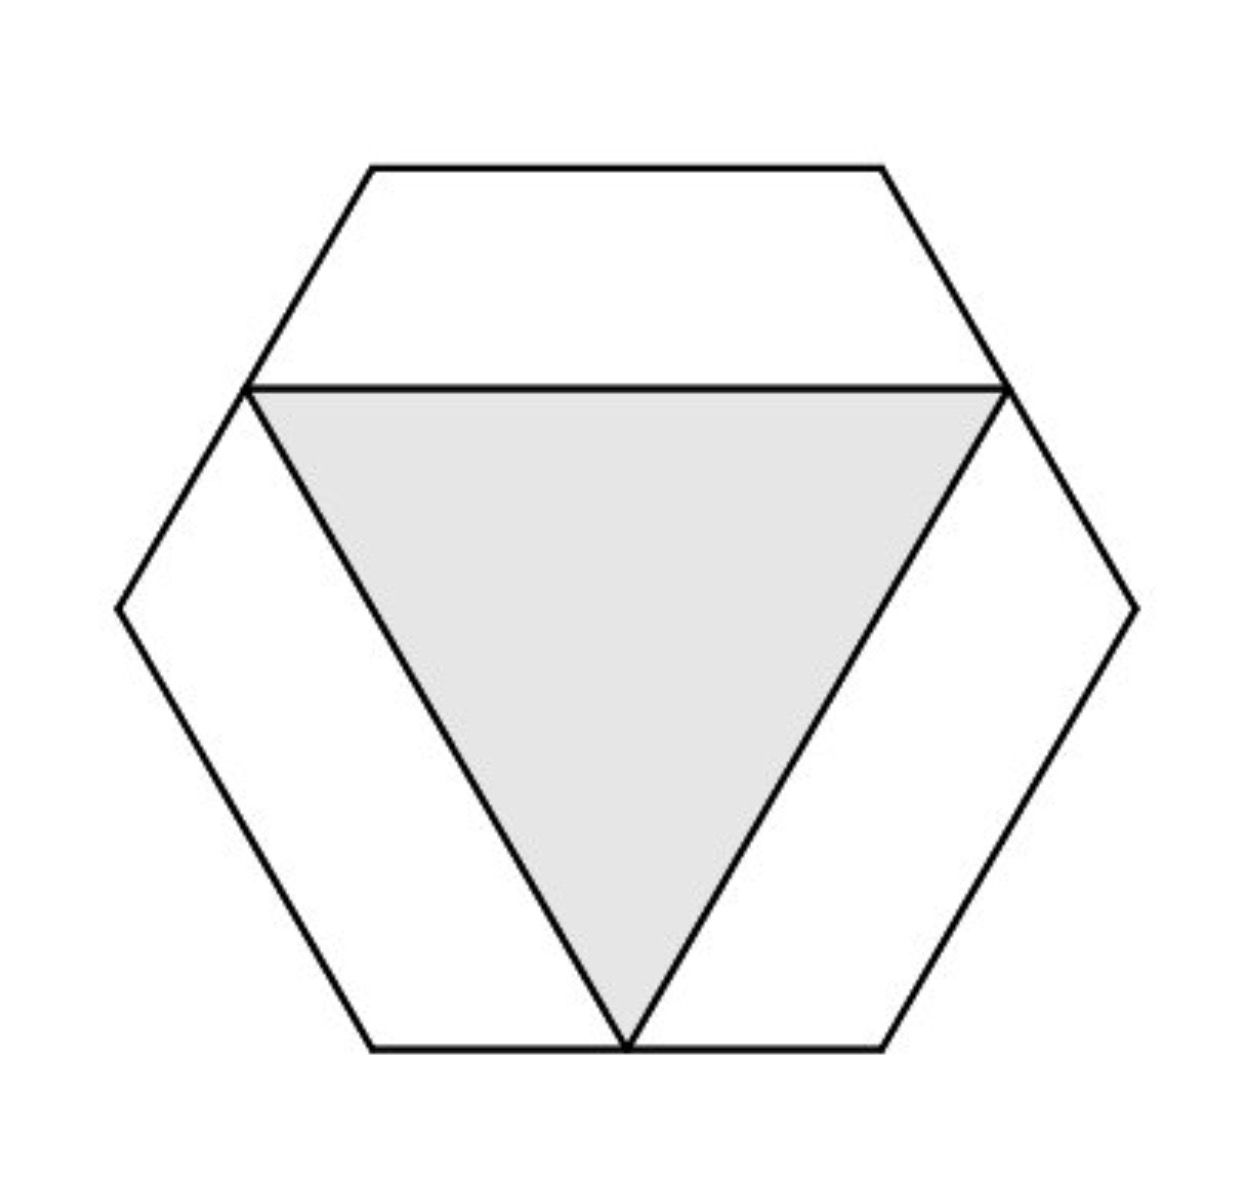 What Fraction Of The Figure Is Shaded